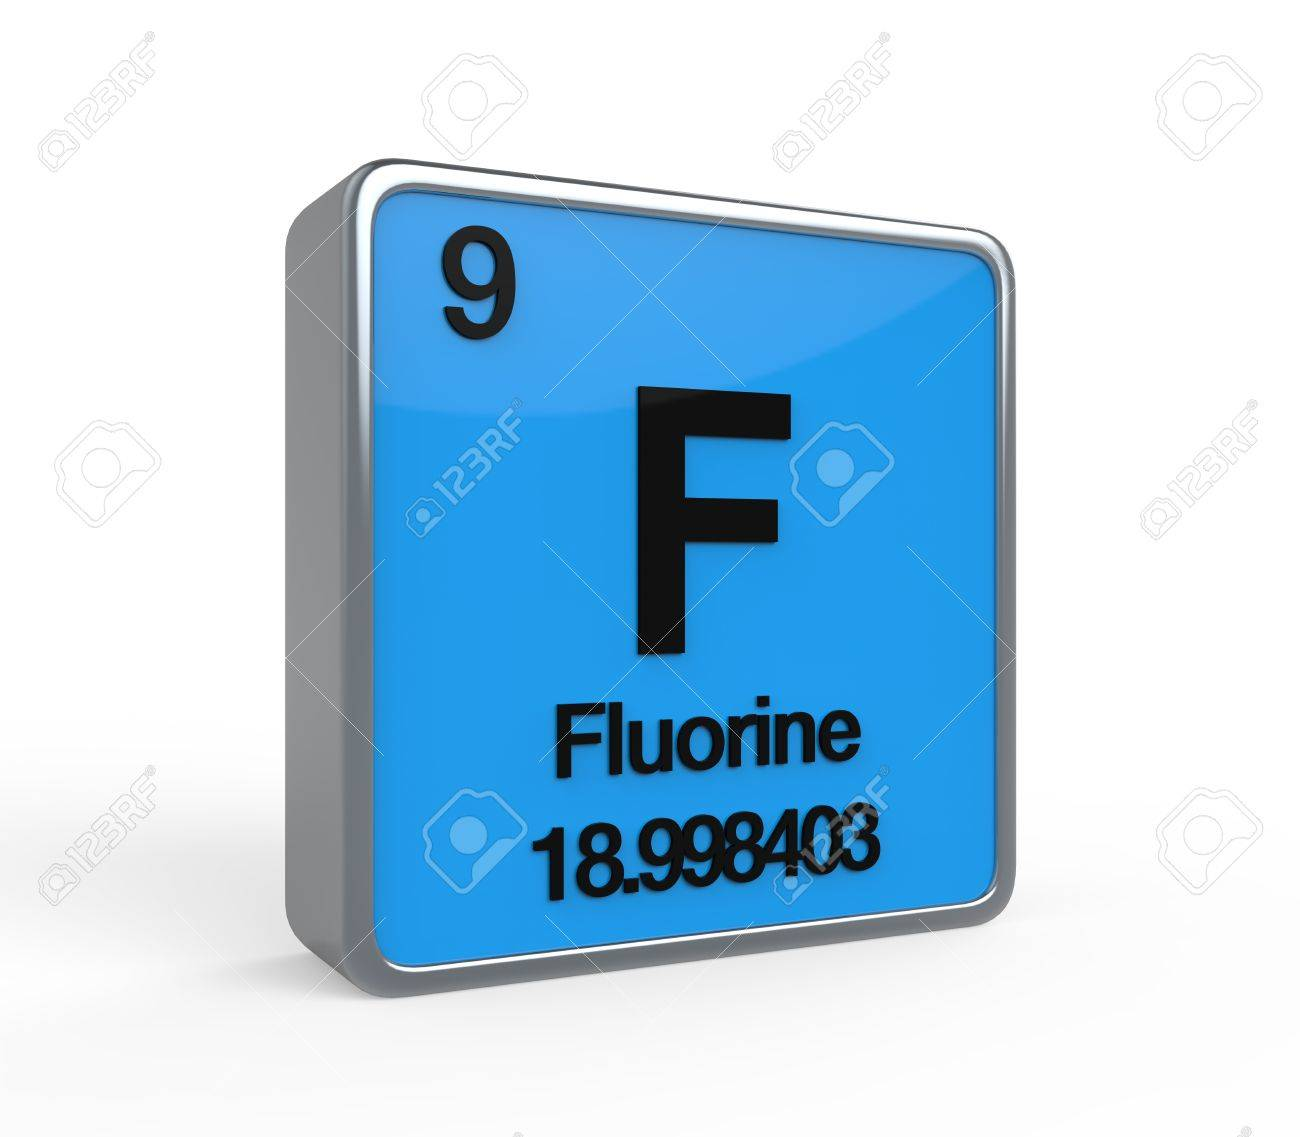 Flouride periodic table gallery periodic table images fluorine on the periodic table image collections periodic table fluorine element periodic table stock photo picture gamestrikefo Gallery